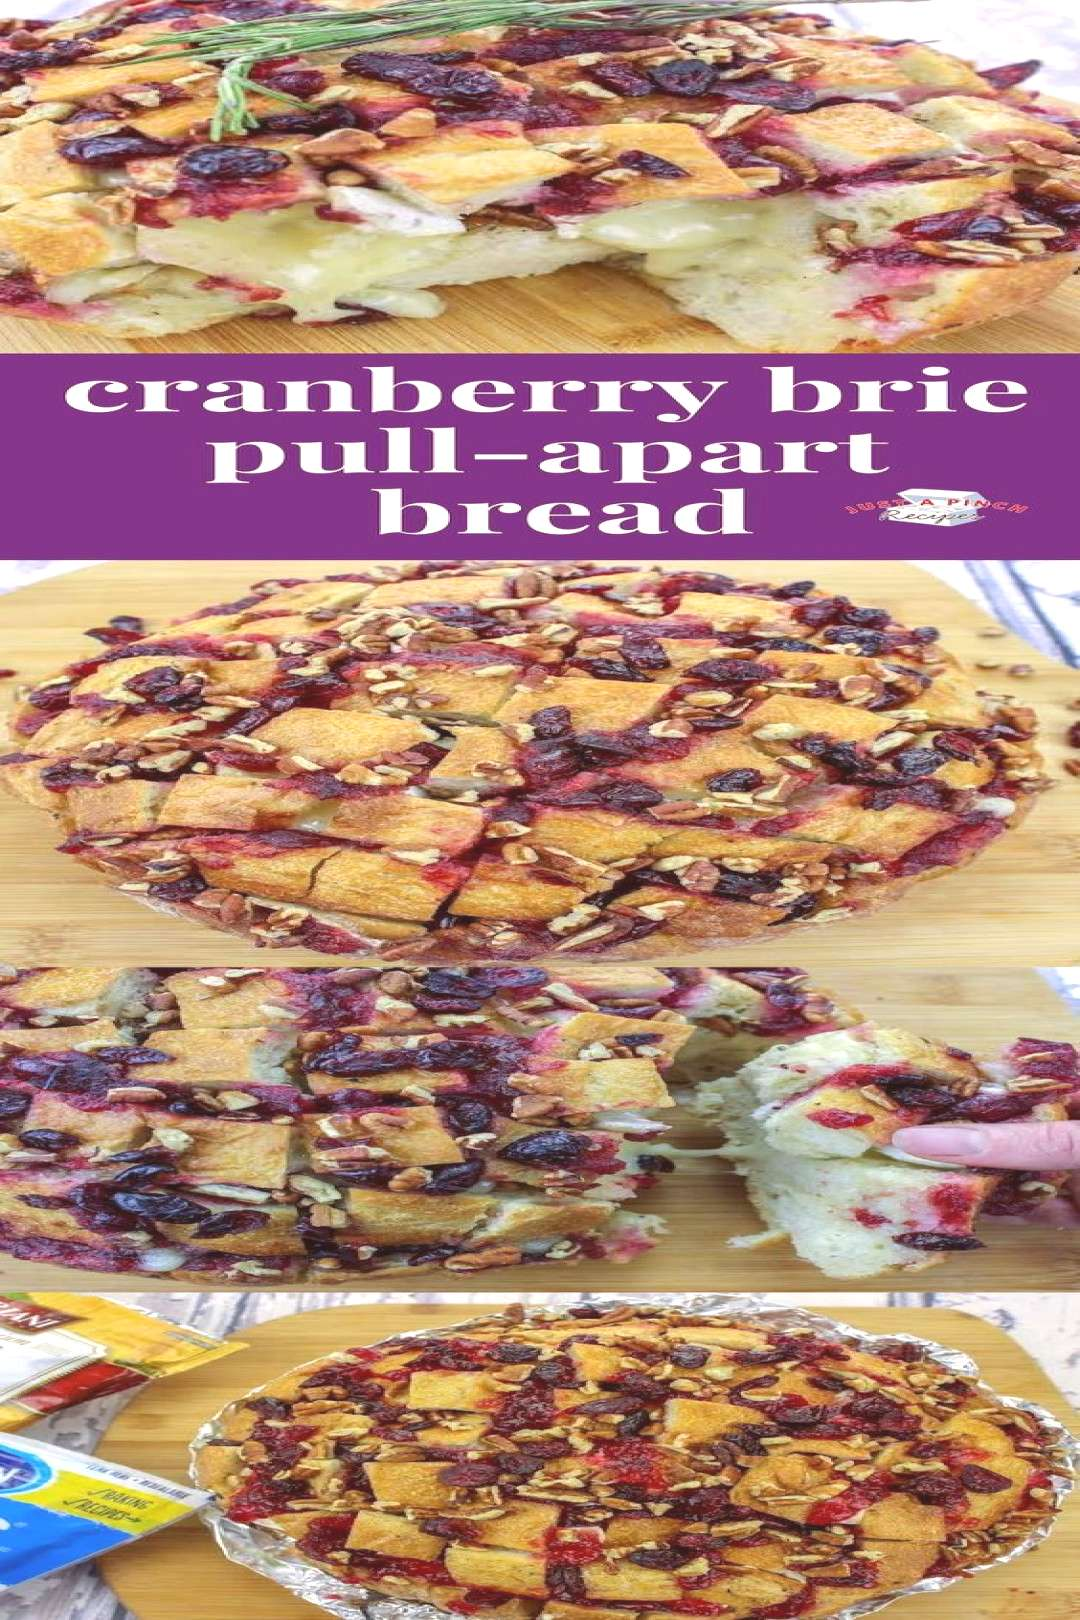 44 This cranberry brie pull-apart bread is click for more ... This cranberry brie pull-apart bread